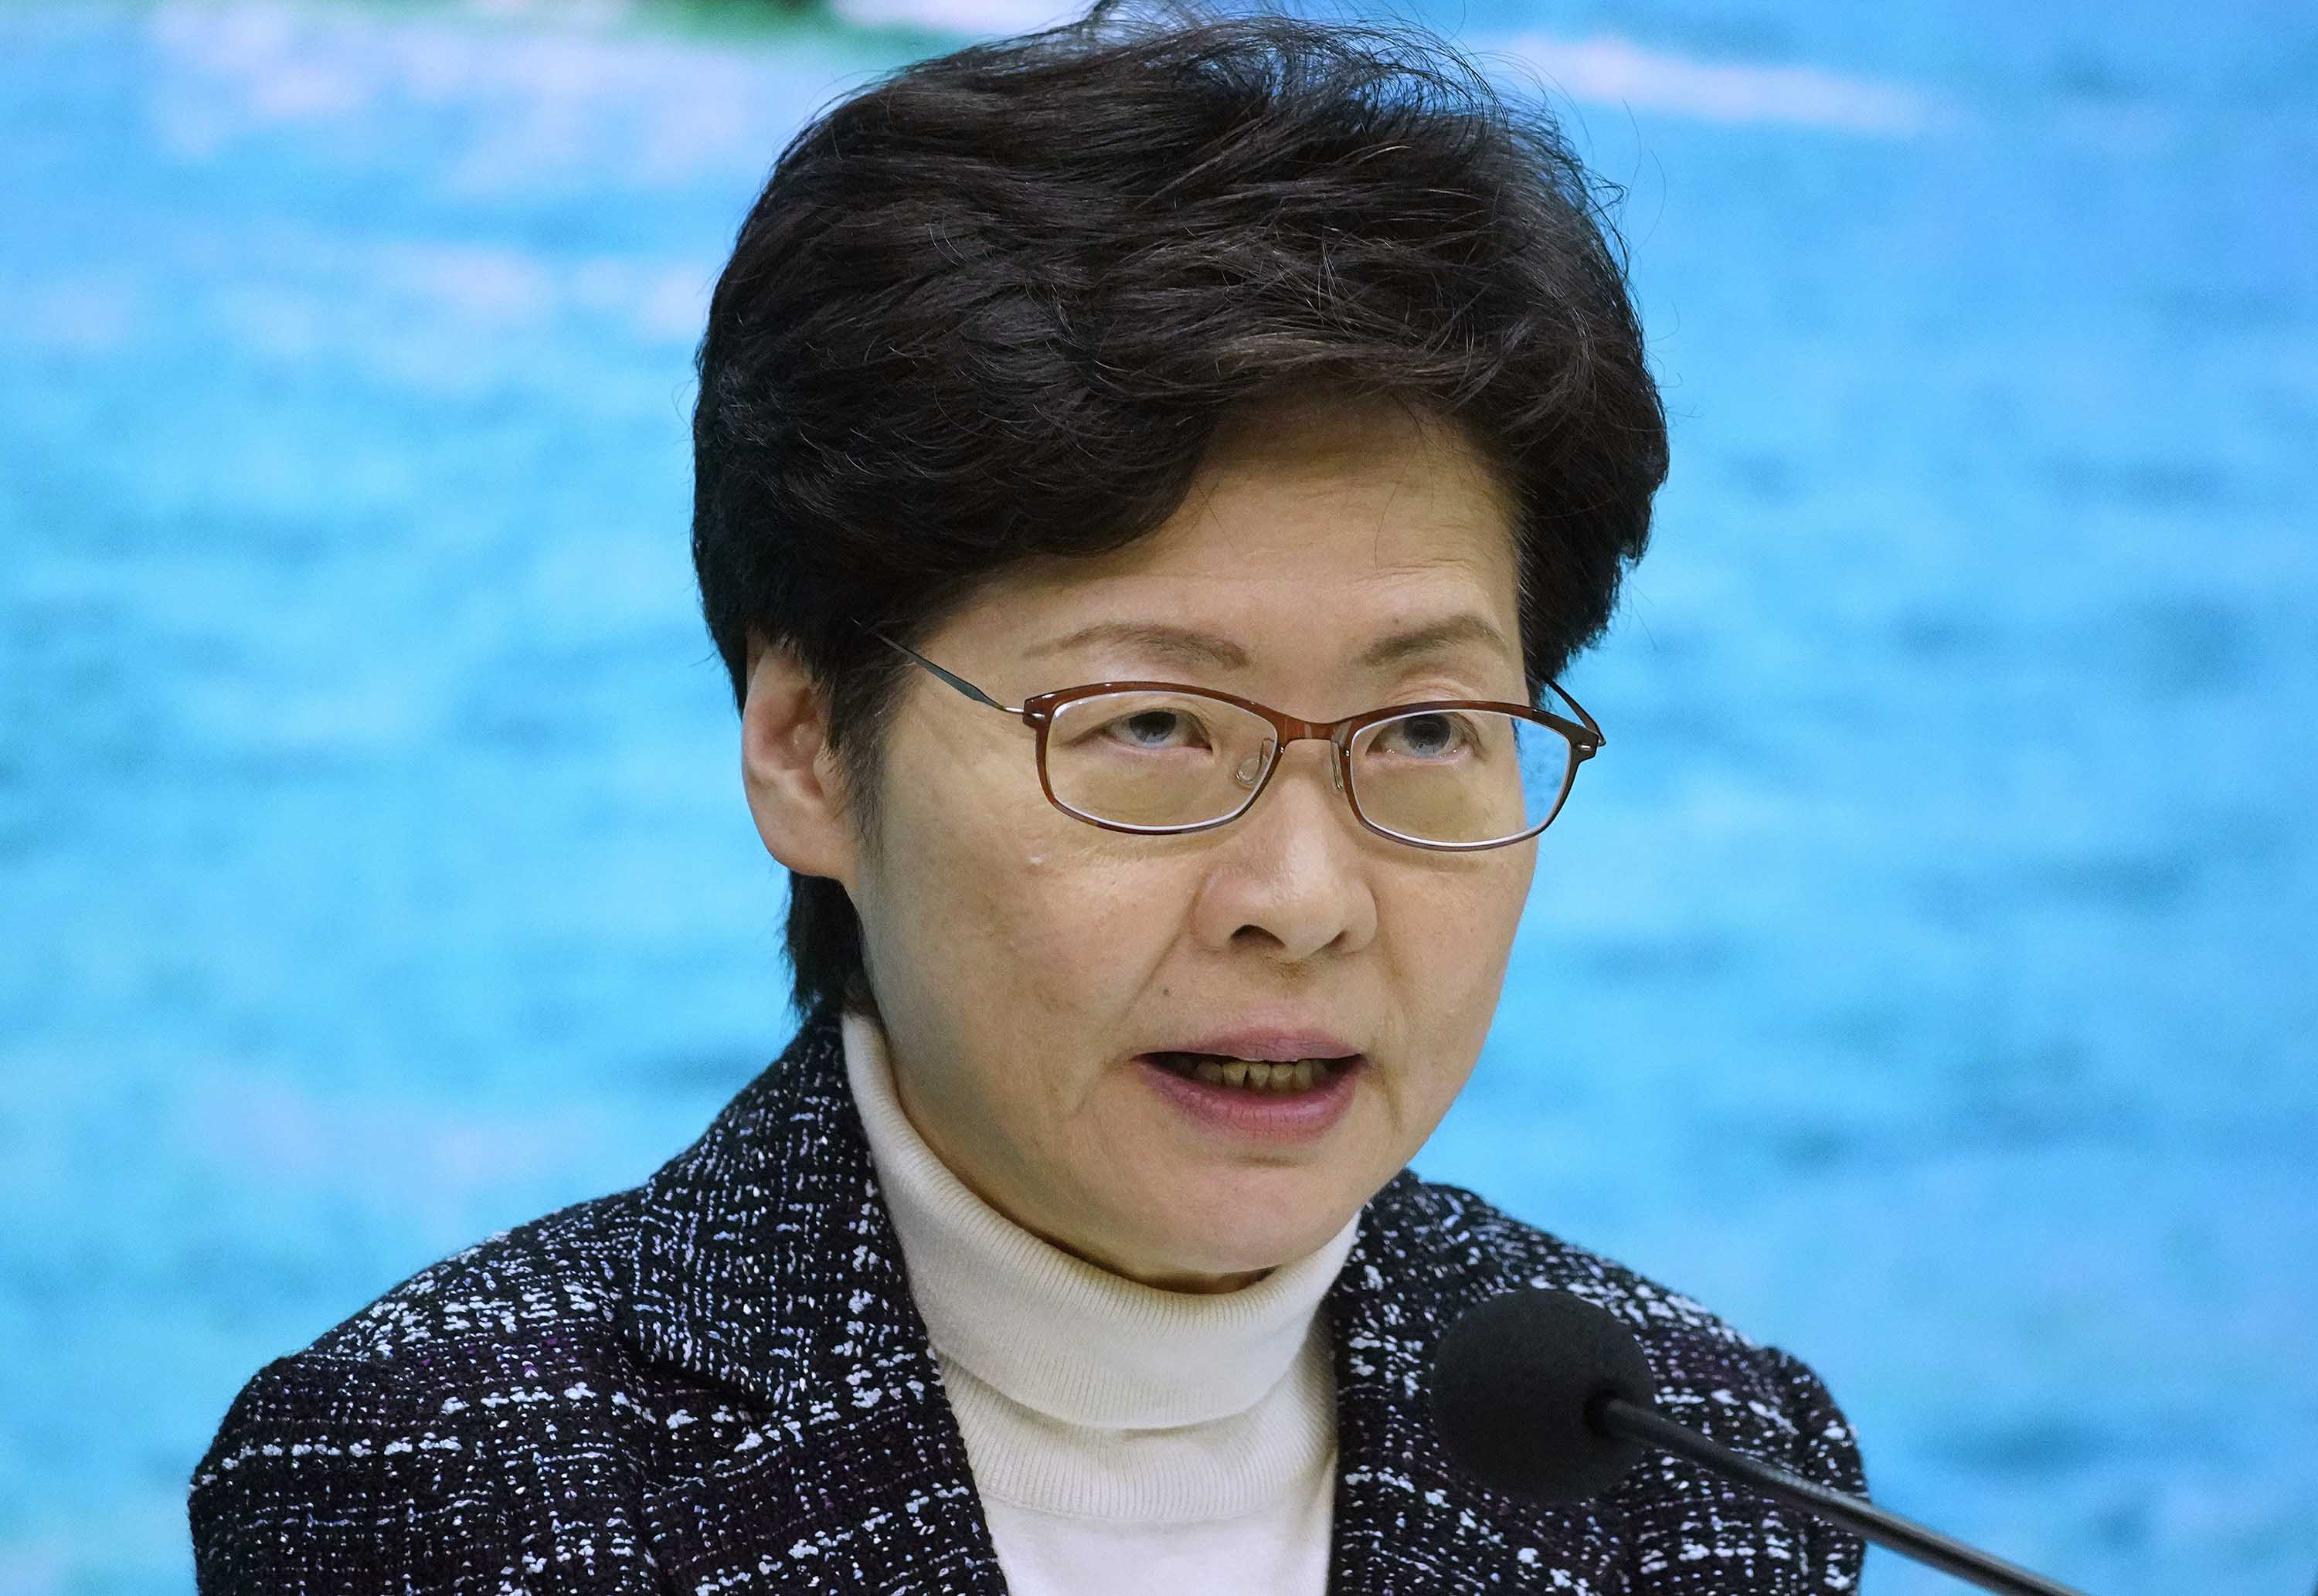 Hong Kong Chief Executive Carrie Lam speaks during a press conference in Hong Kong on Wednesday.